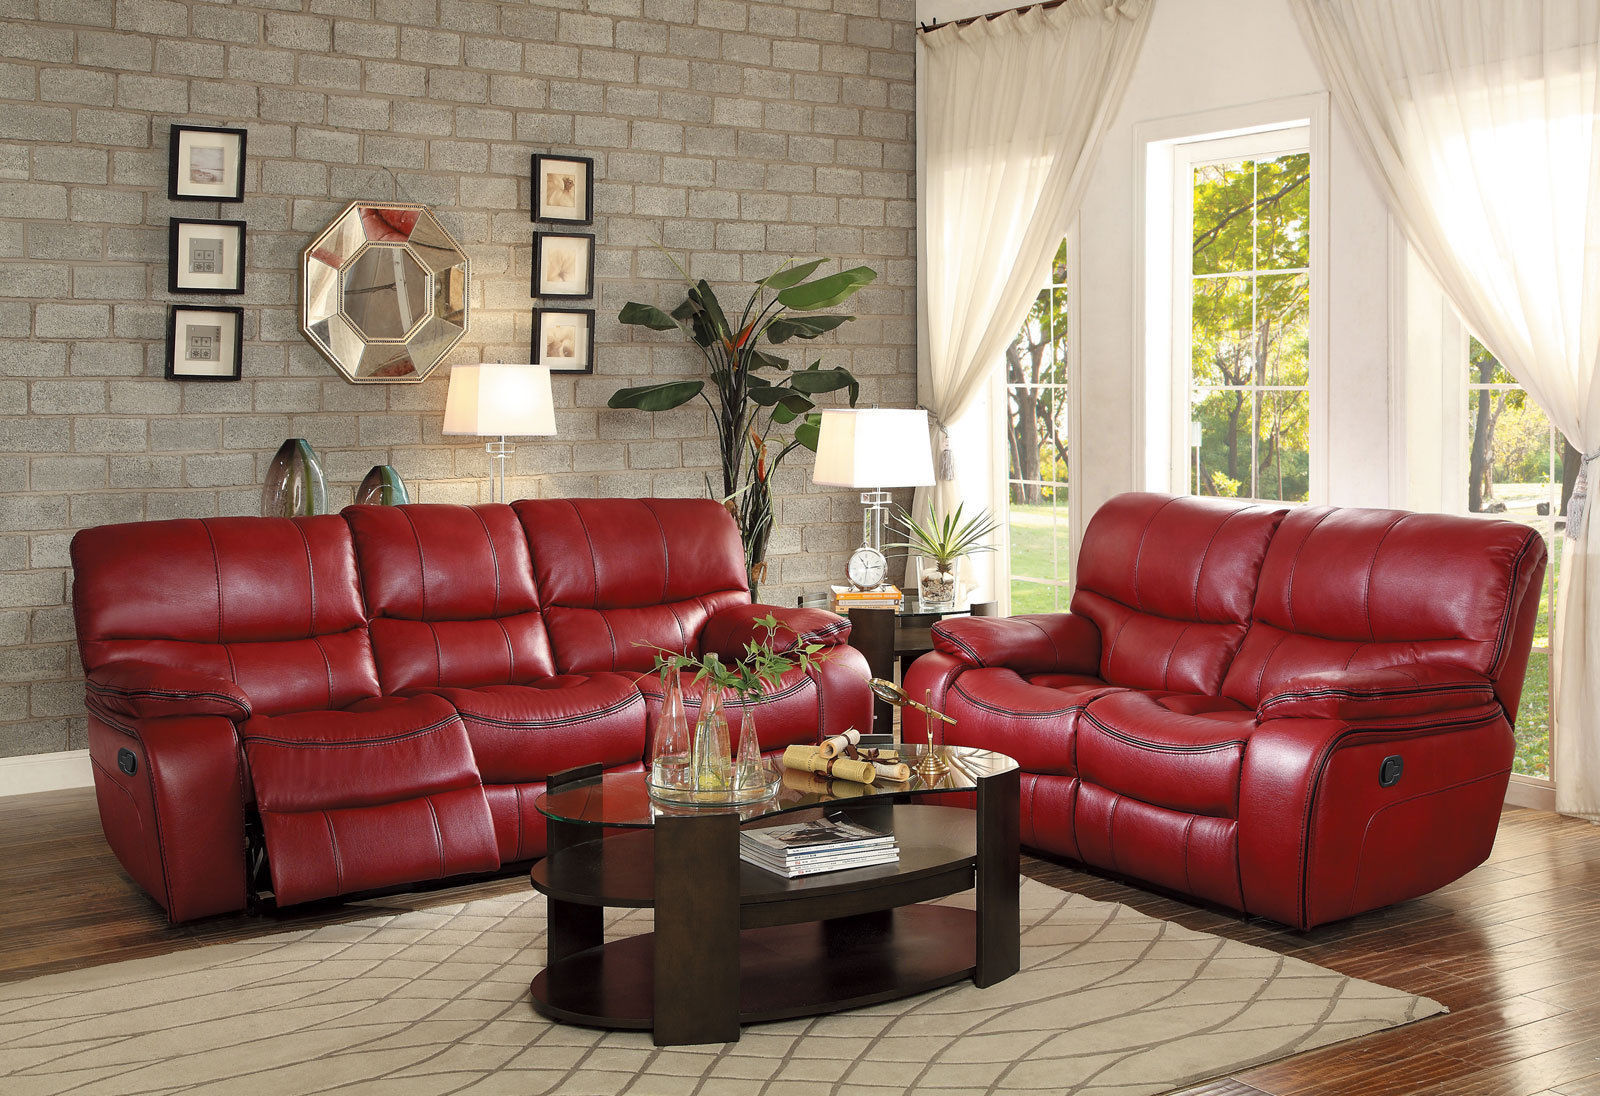 Modern living room couch set new red faux leather - Red leather living room furniture set ...